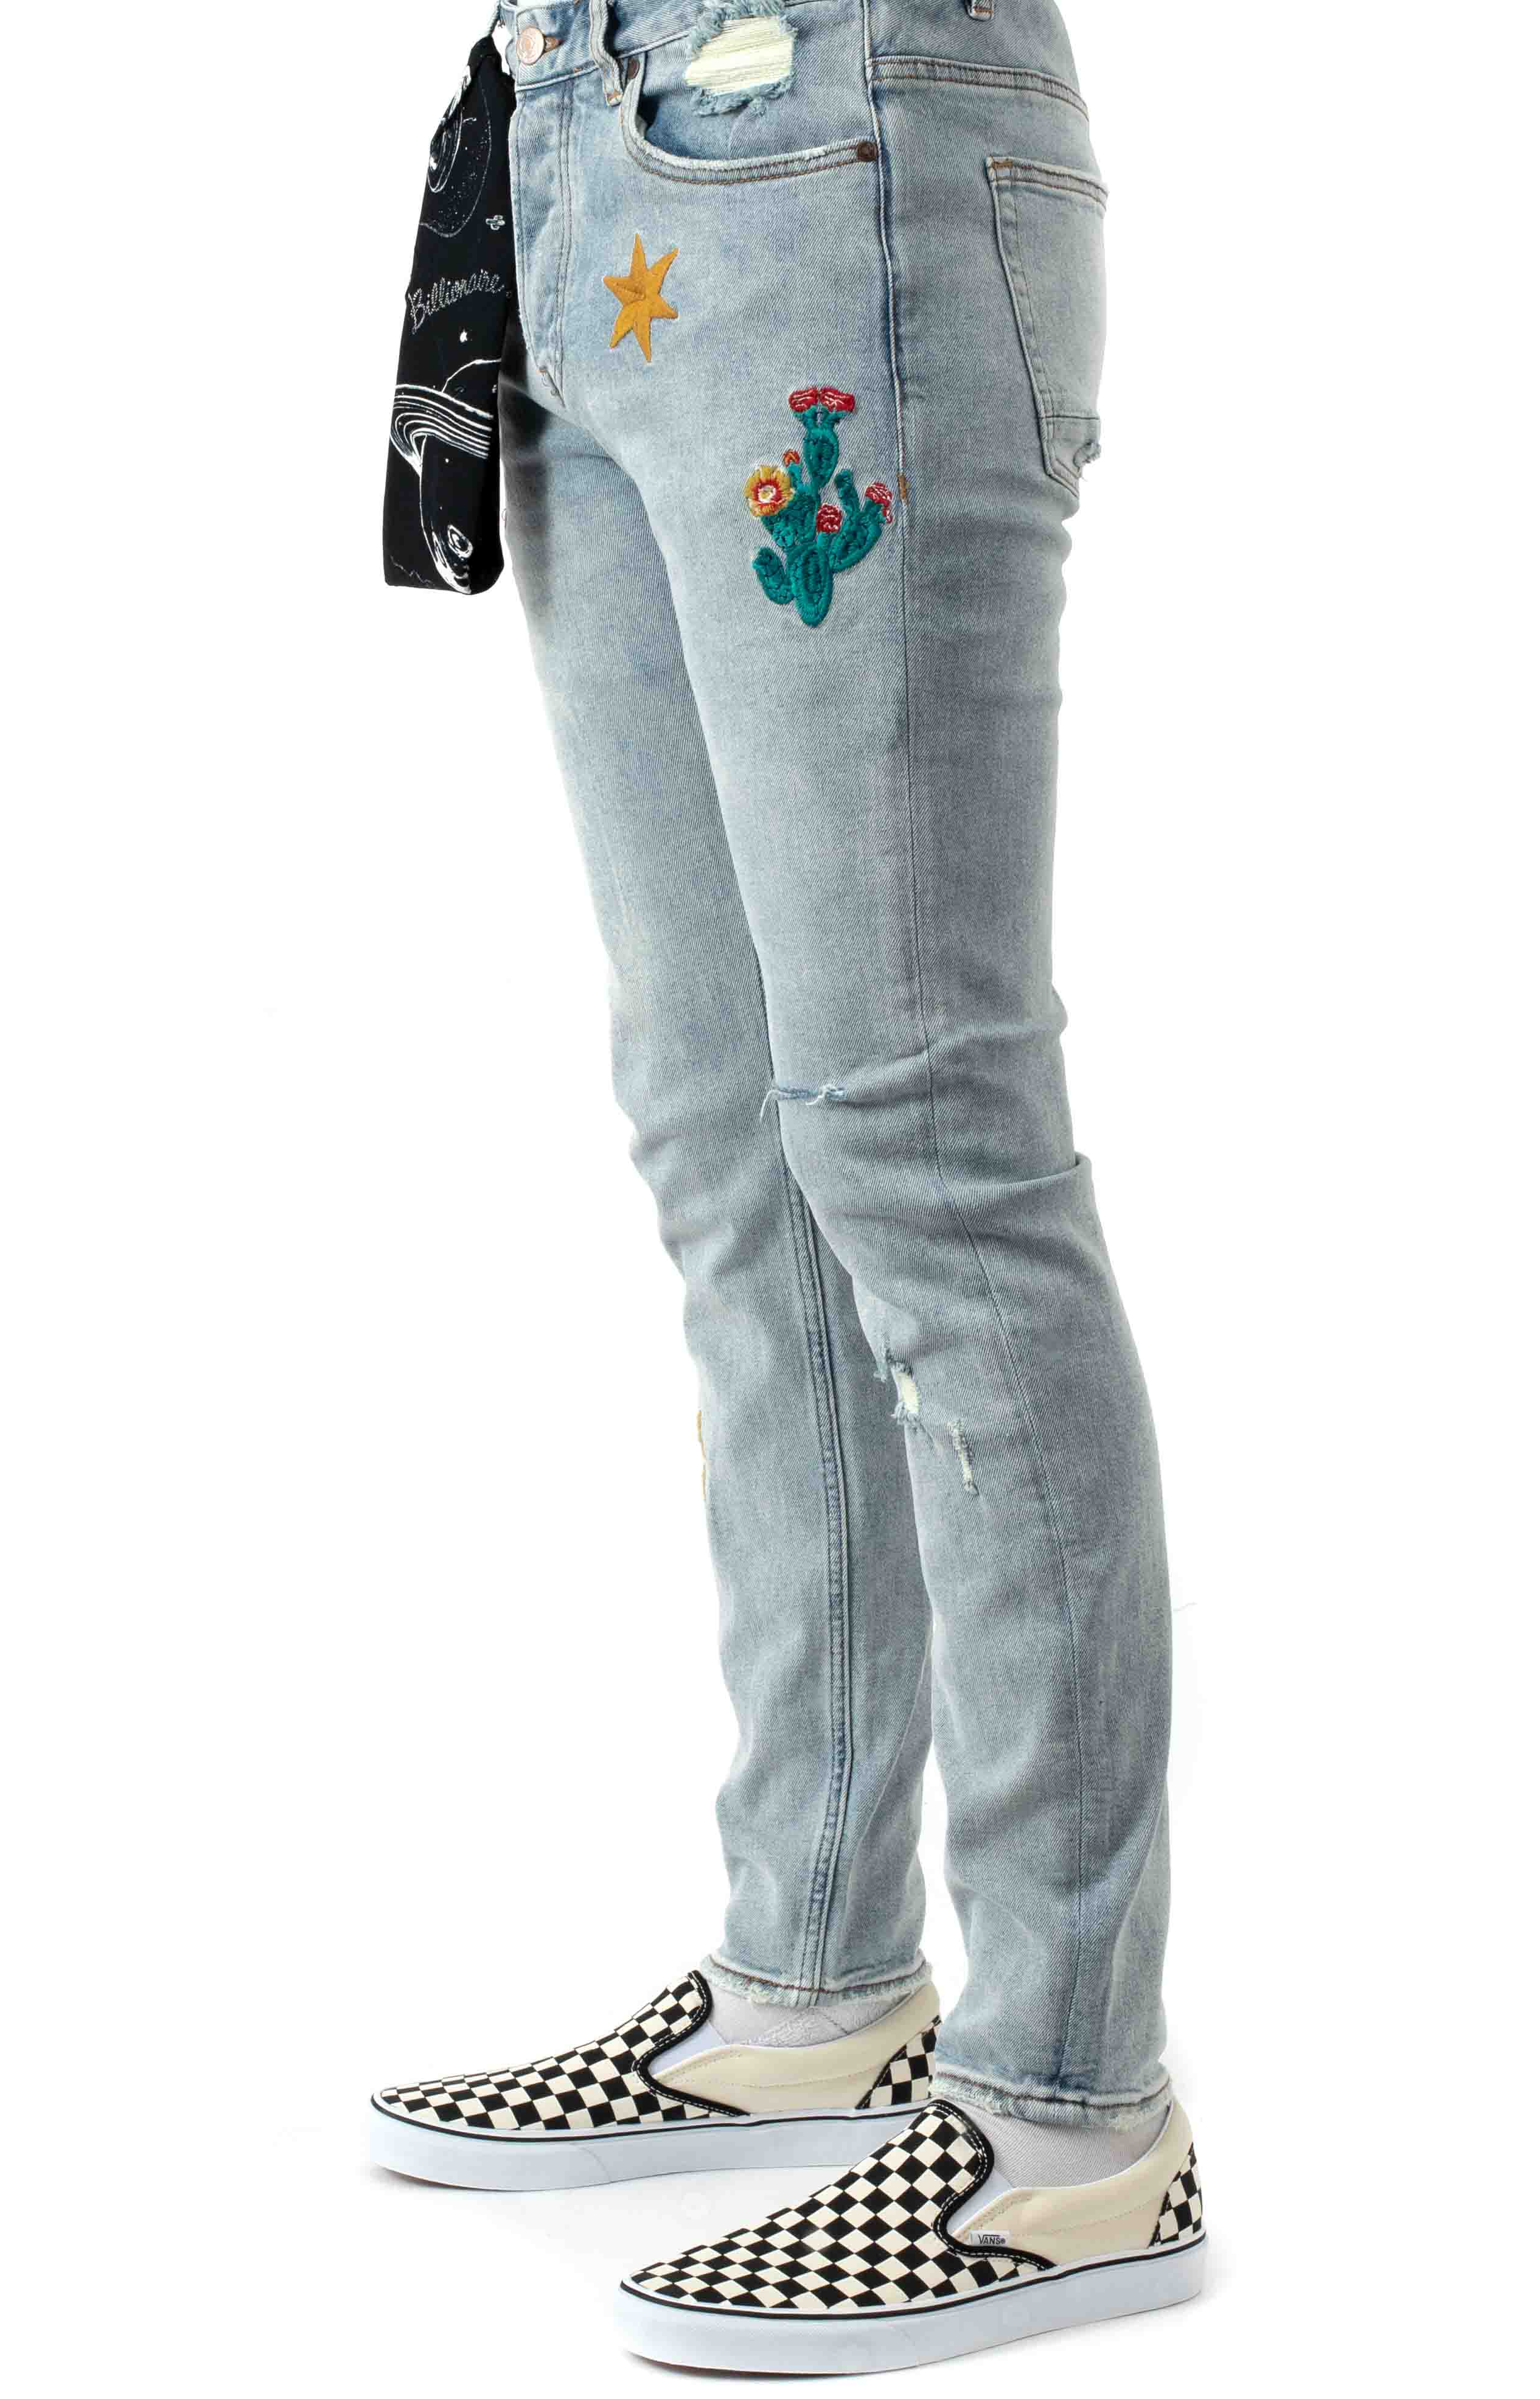 BB Dungarees Jeans - Infinity  2